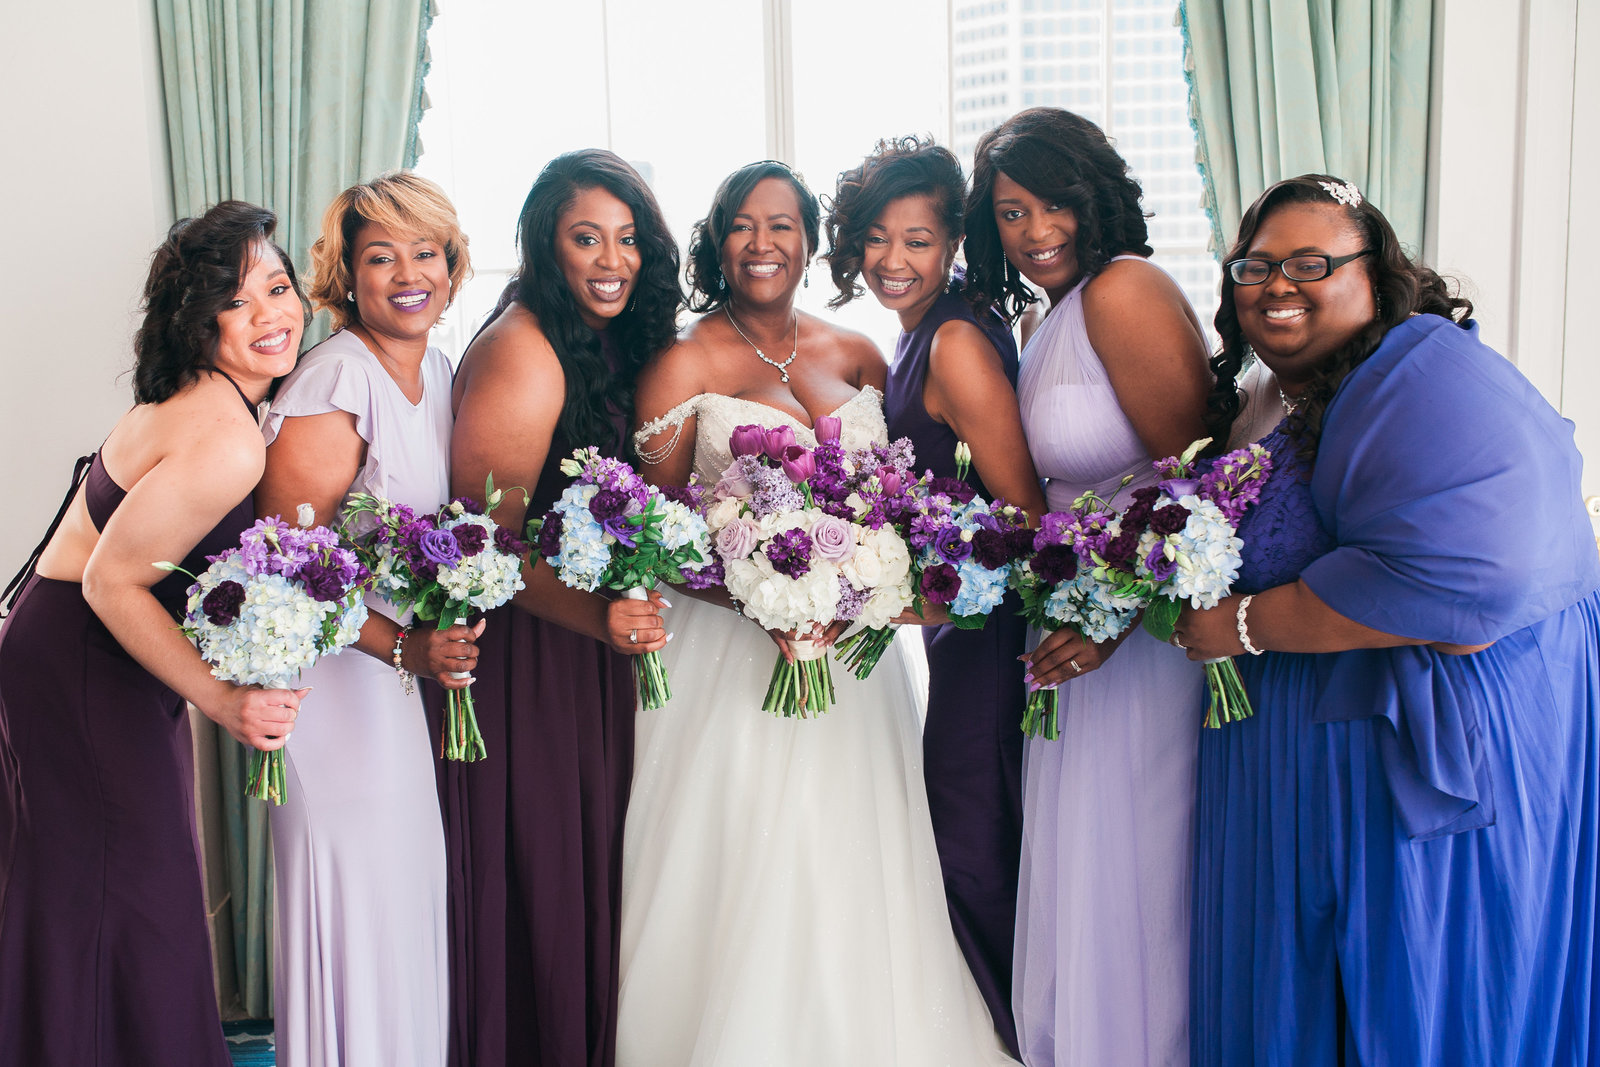 bride posing with bridesmaids in purple dresses St Louis Pinxit Photo